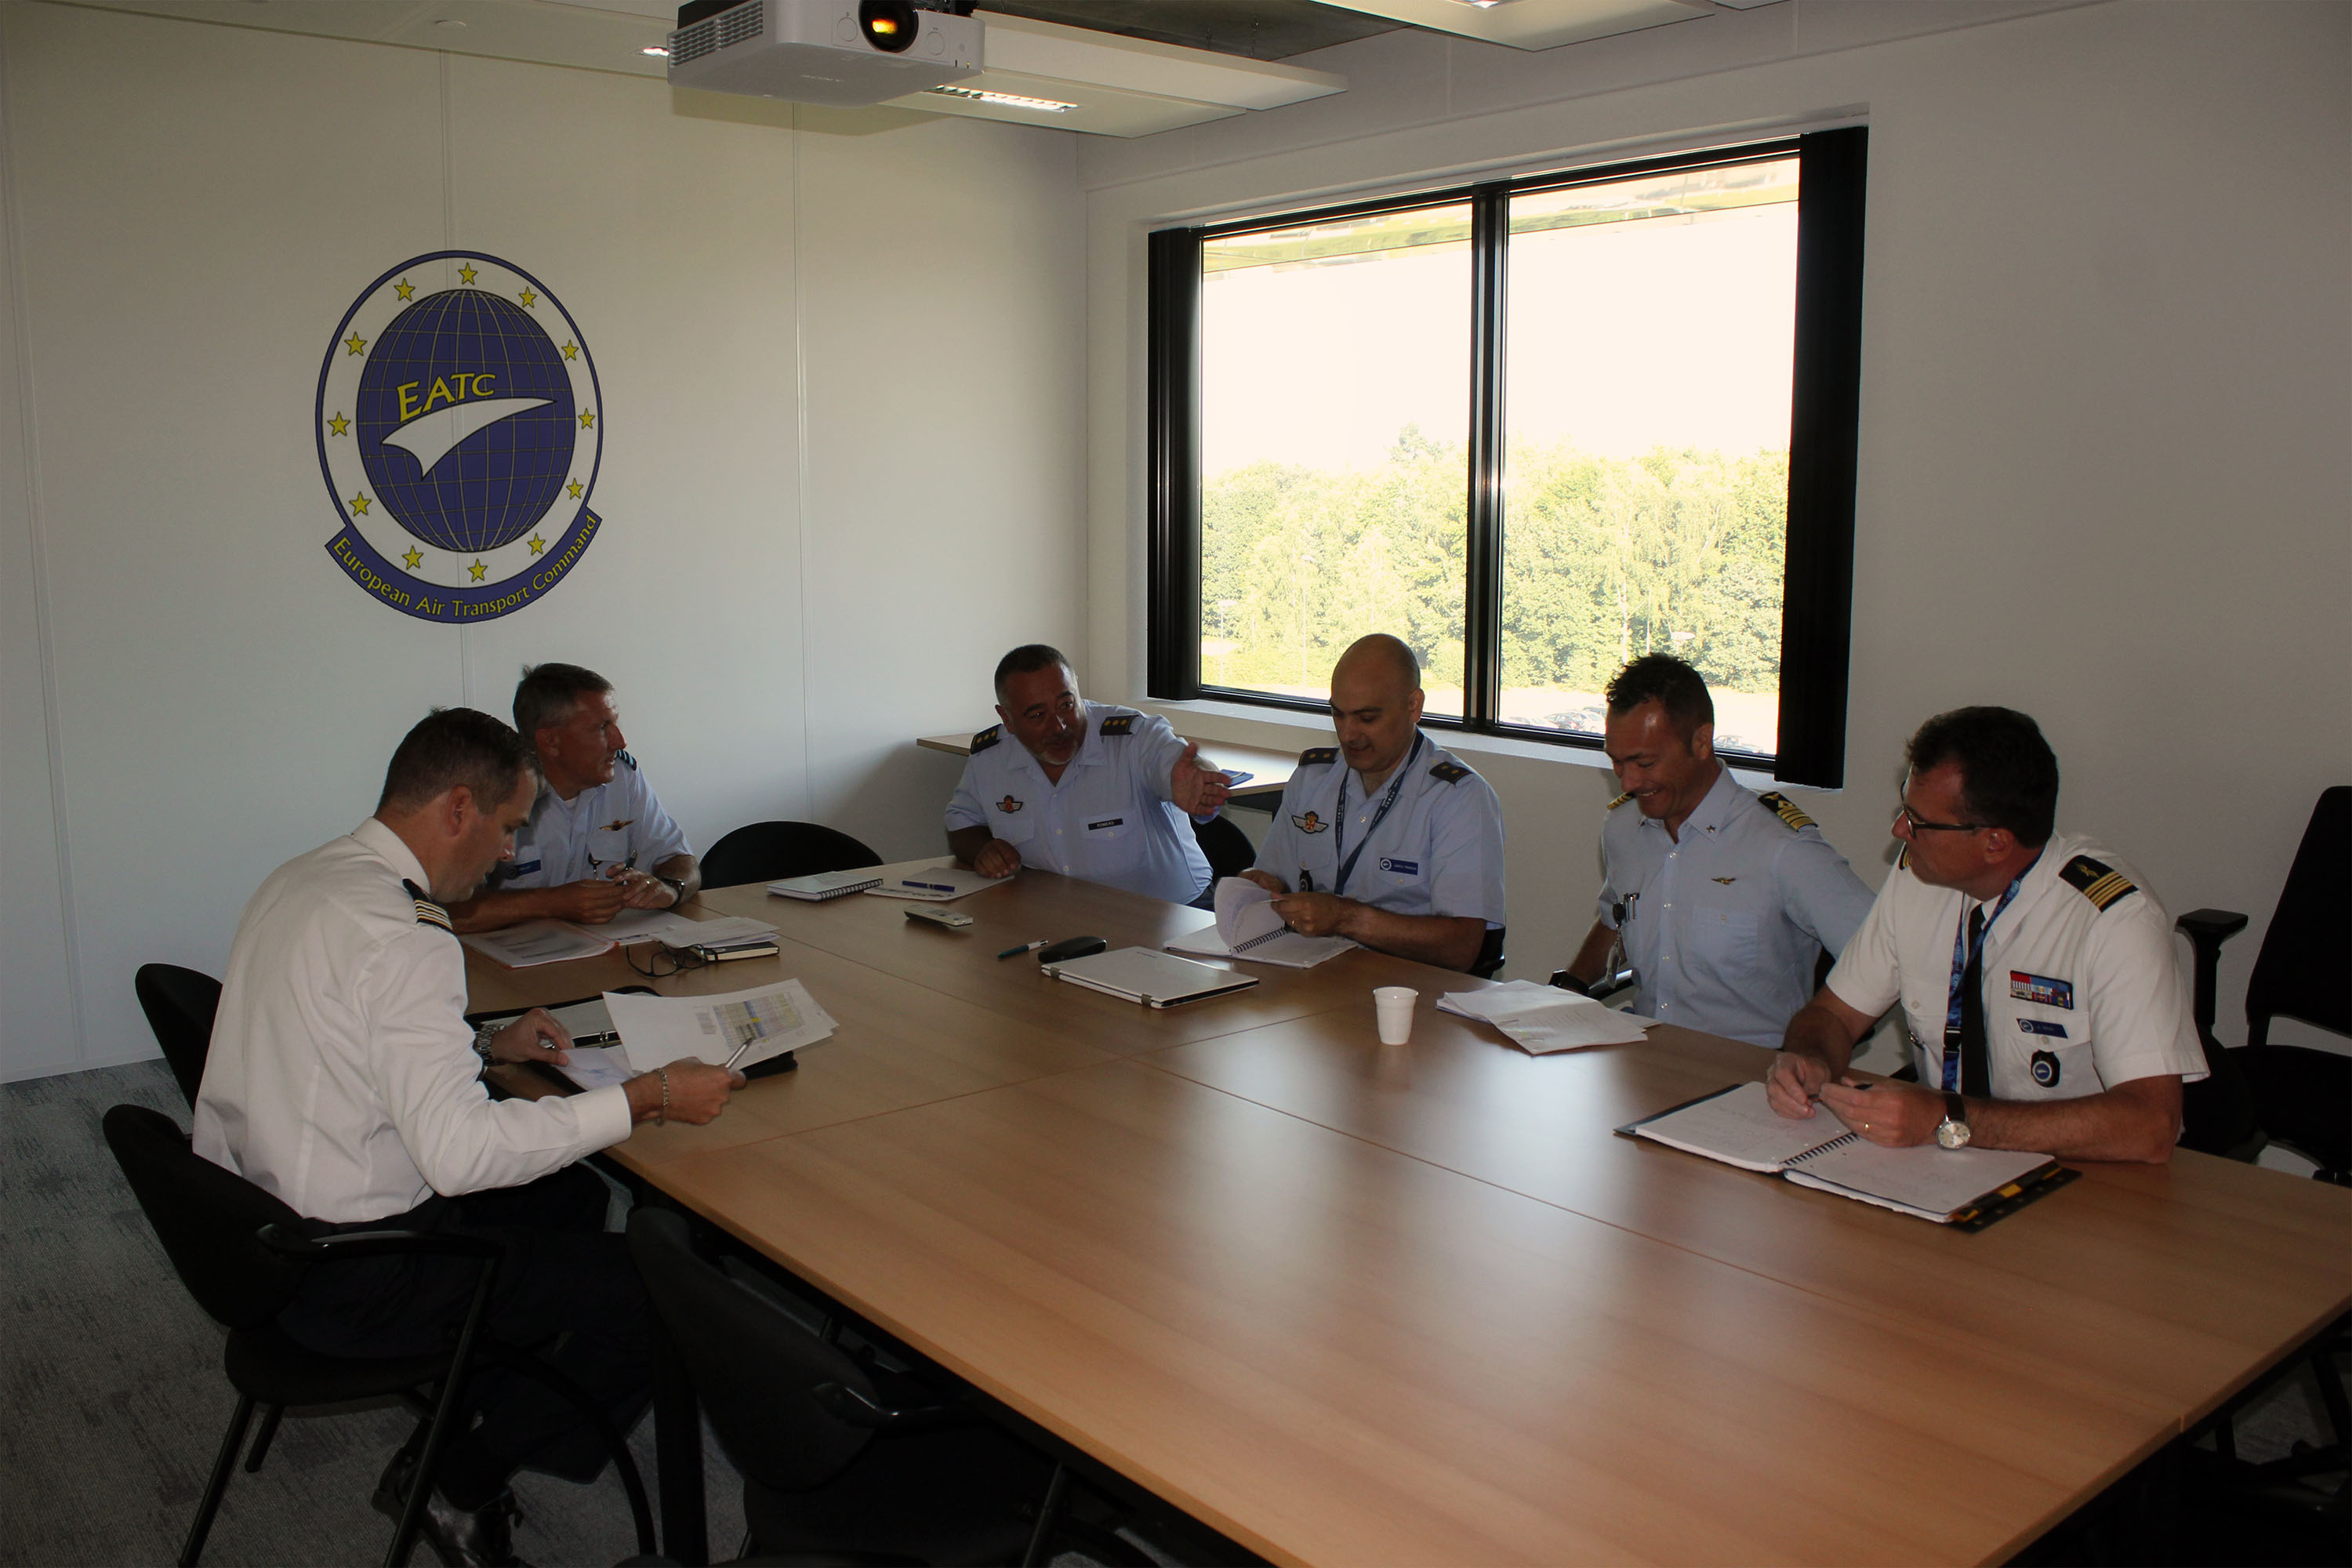 European Tactical Airlift Centre (ETAC) visits EATC